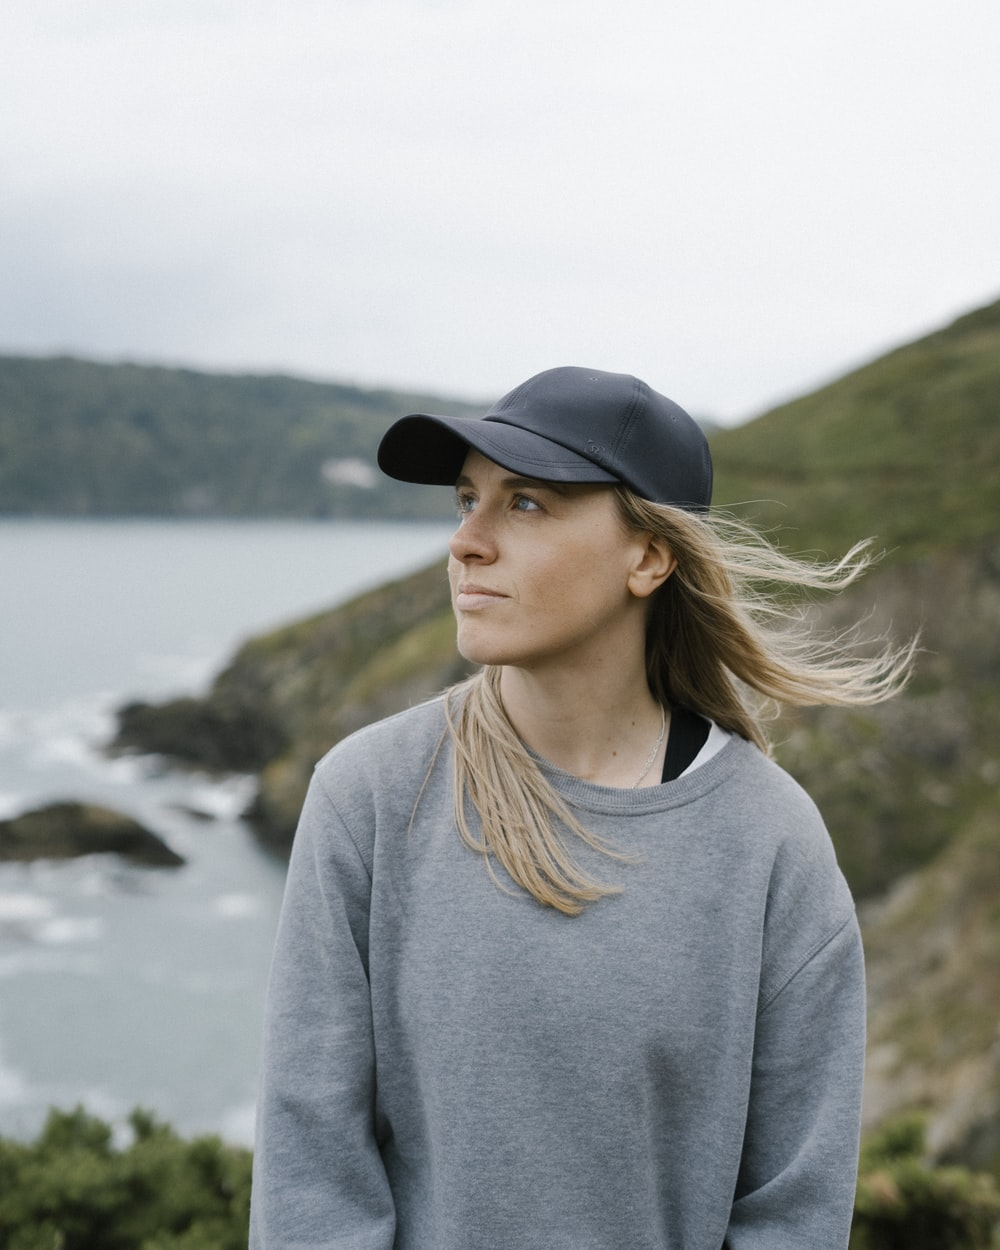 woman in gray sweater and black fedora hat standing near body of water during daytime